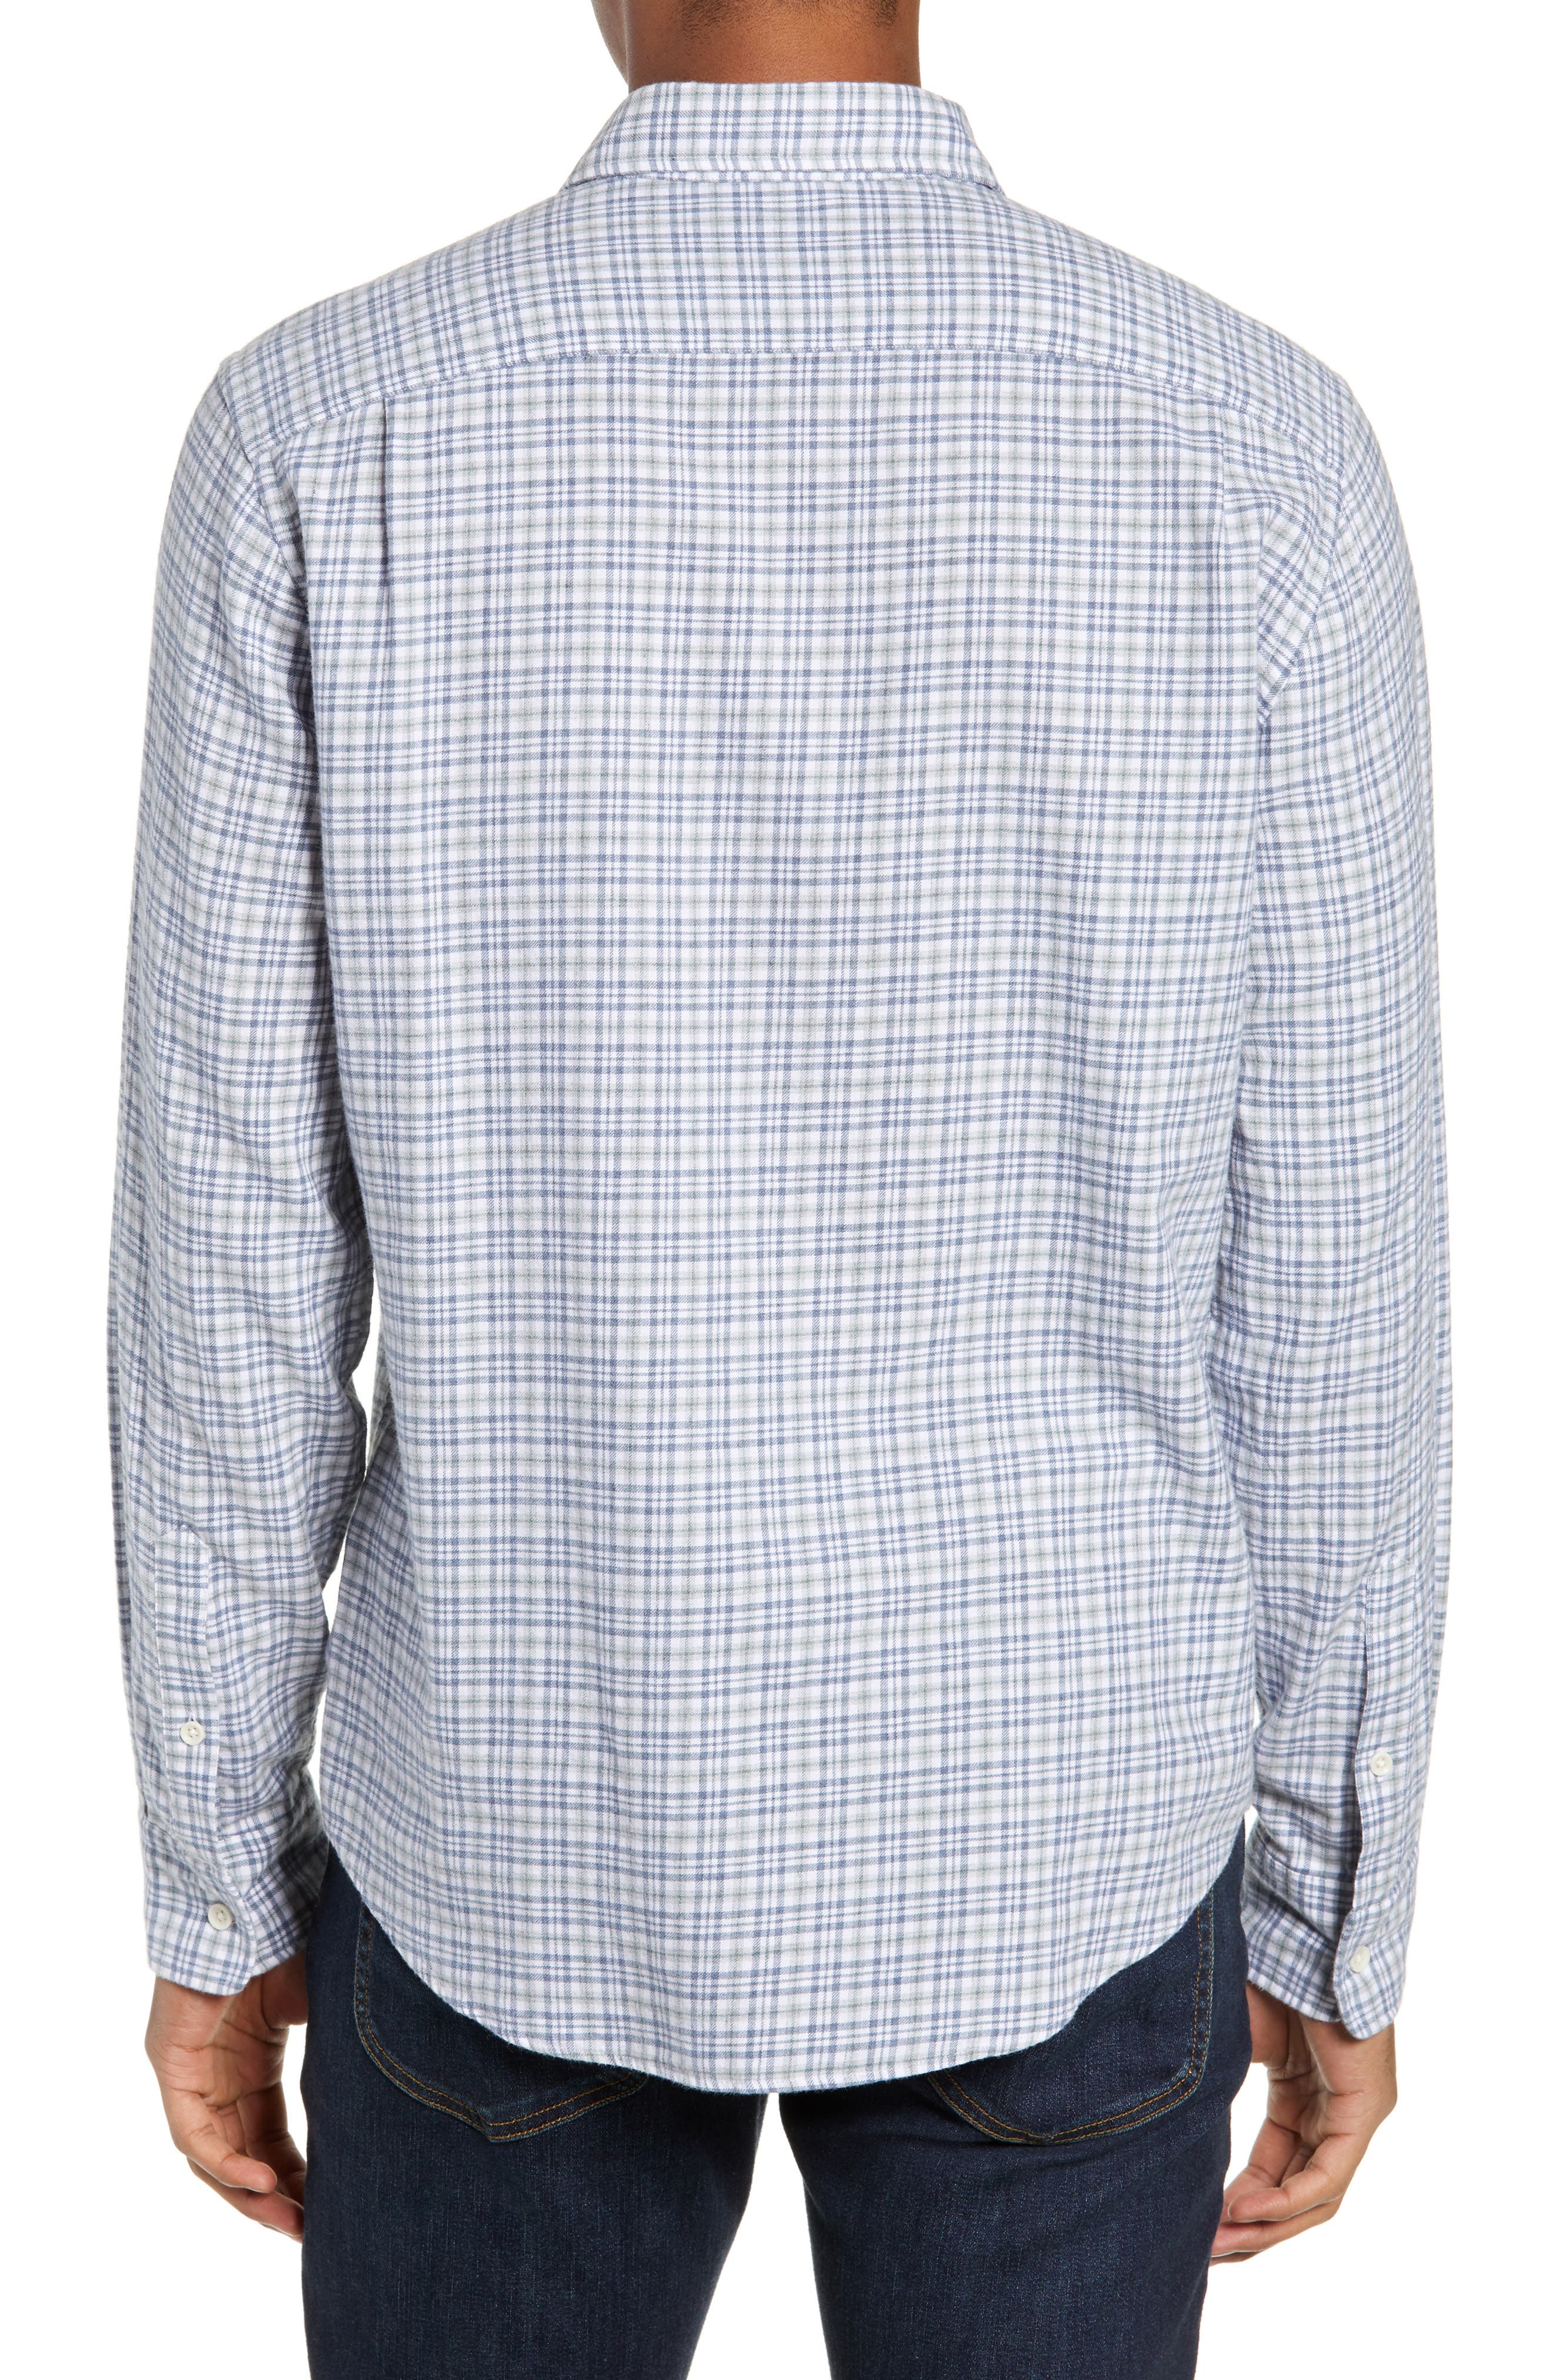 Ventura Regular Fit Plaid Sport Shirt,                             Alternate thumbnail 3, color,                             HEATHER GREY MULTI